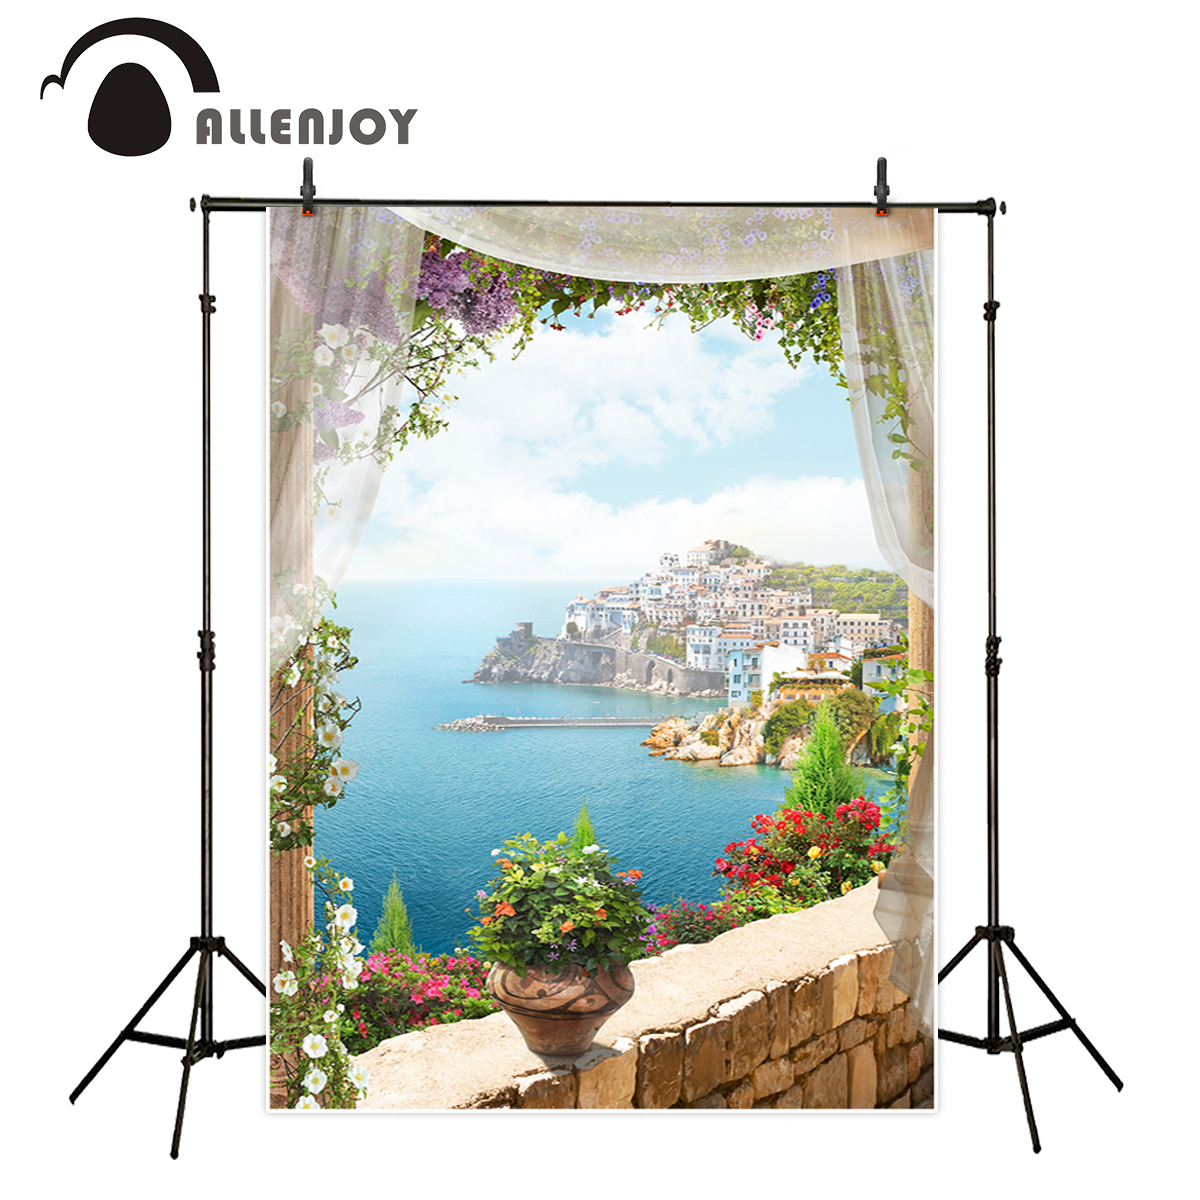 Allenjoy Ocean And Inshore City Photography Backdrops Floral Romantic Aesthetic Backgrounds For Photo Studio Camera Fotografica Backgrounds For Photo Studio Background For Photophotography Backdrops Floral Aliexpress